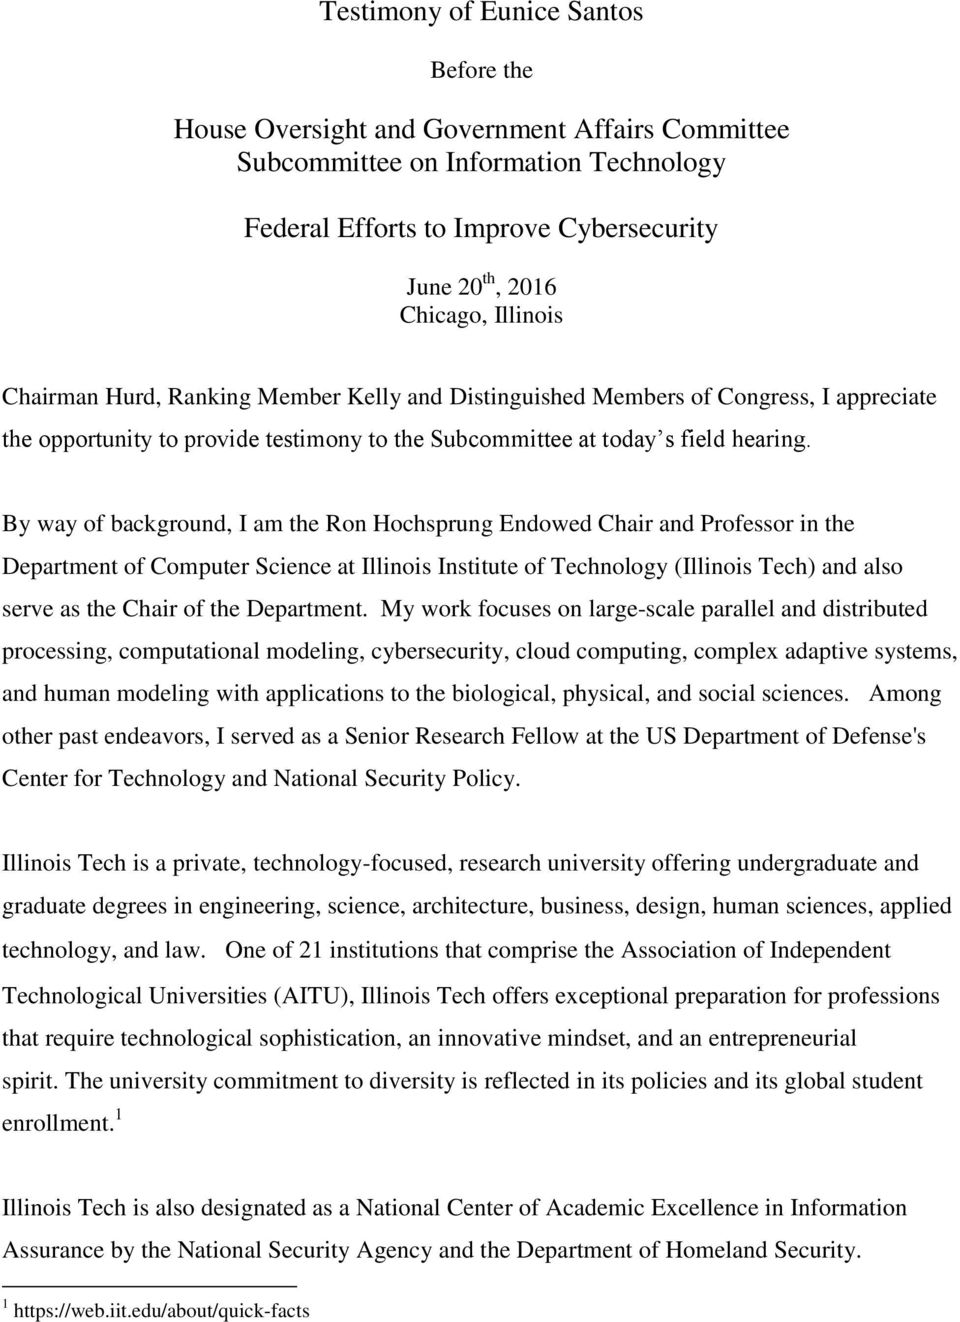 By way of background, I am the Ron Hochsprung Endowed Chair and Professor in the Department of Computer Science at Illinois Institute of Technology (Illinois Tech) and also serve as the Chair of the